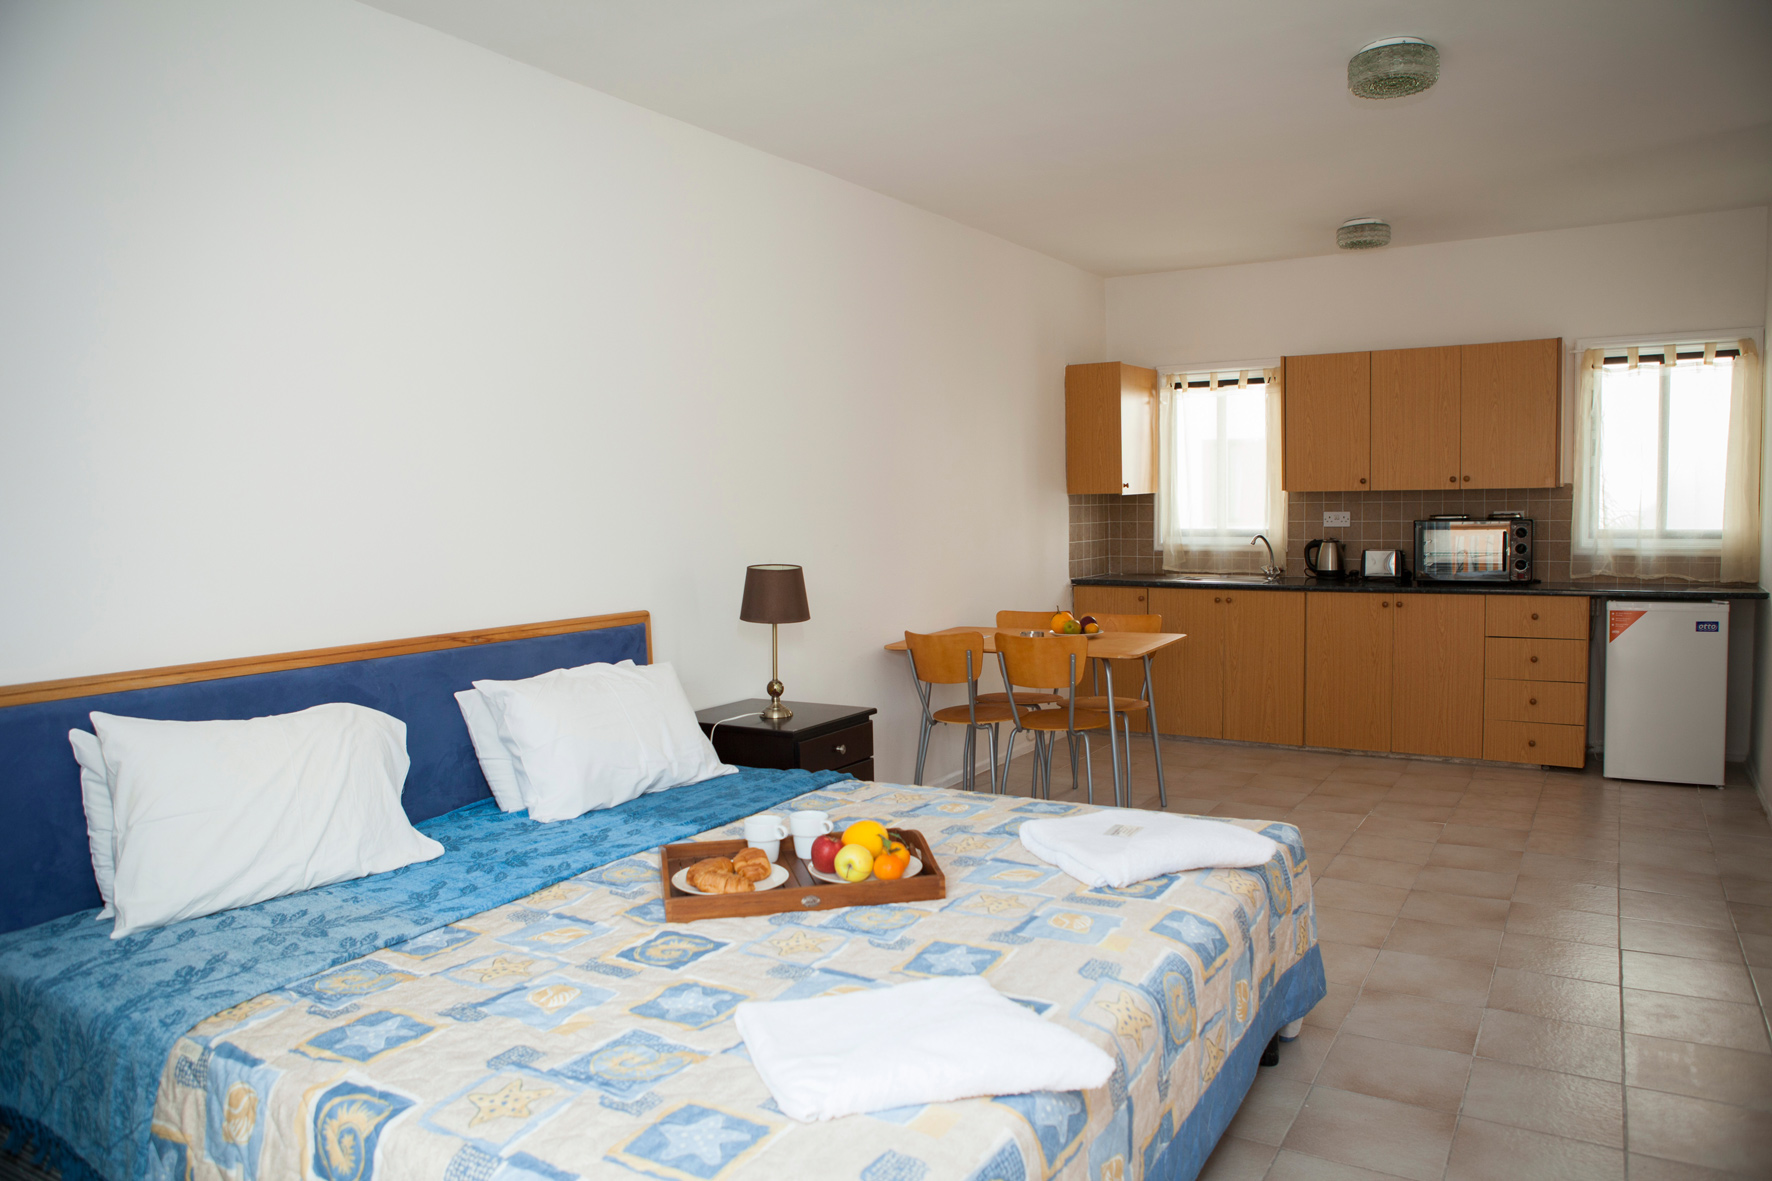 Hotel Appartment 28 Images Best Price On Al Barsha Hotel Apartments By Mondo In Dubai